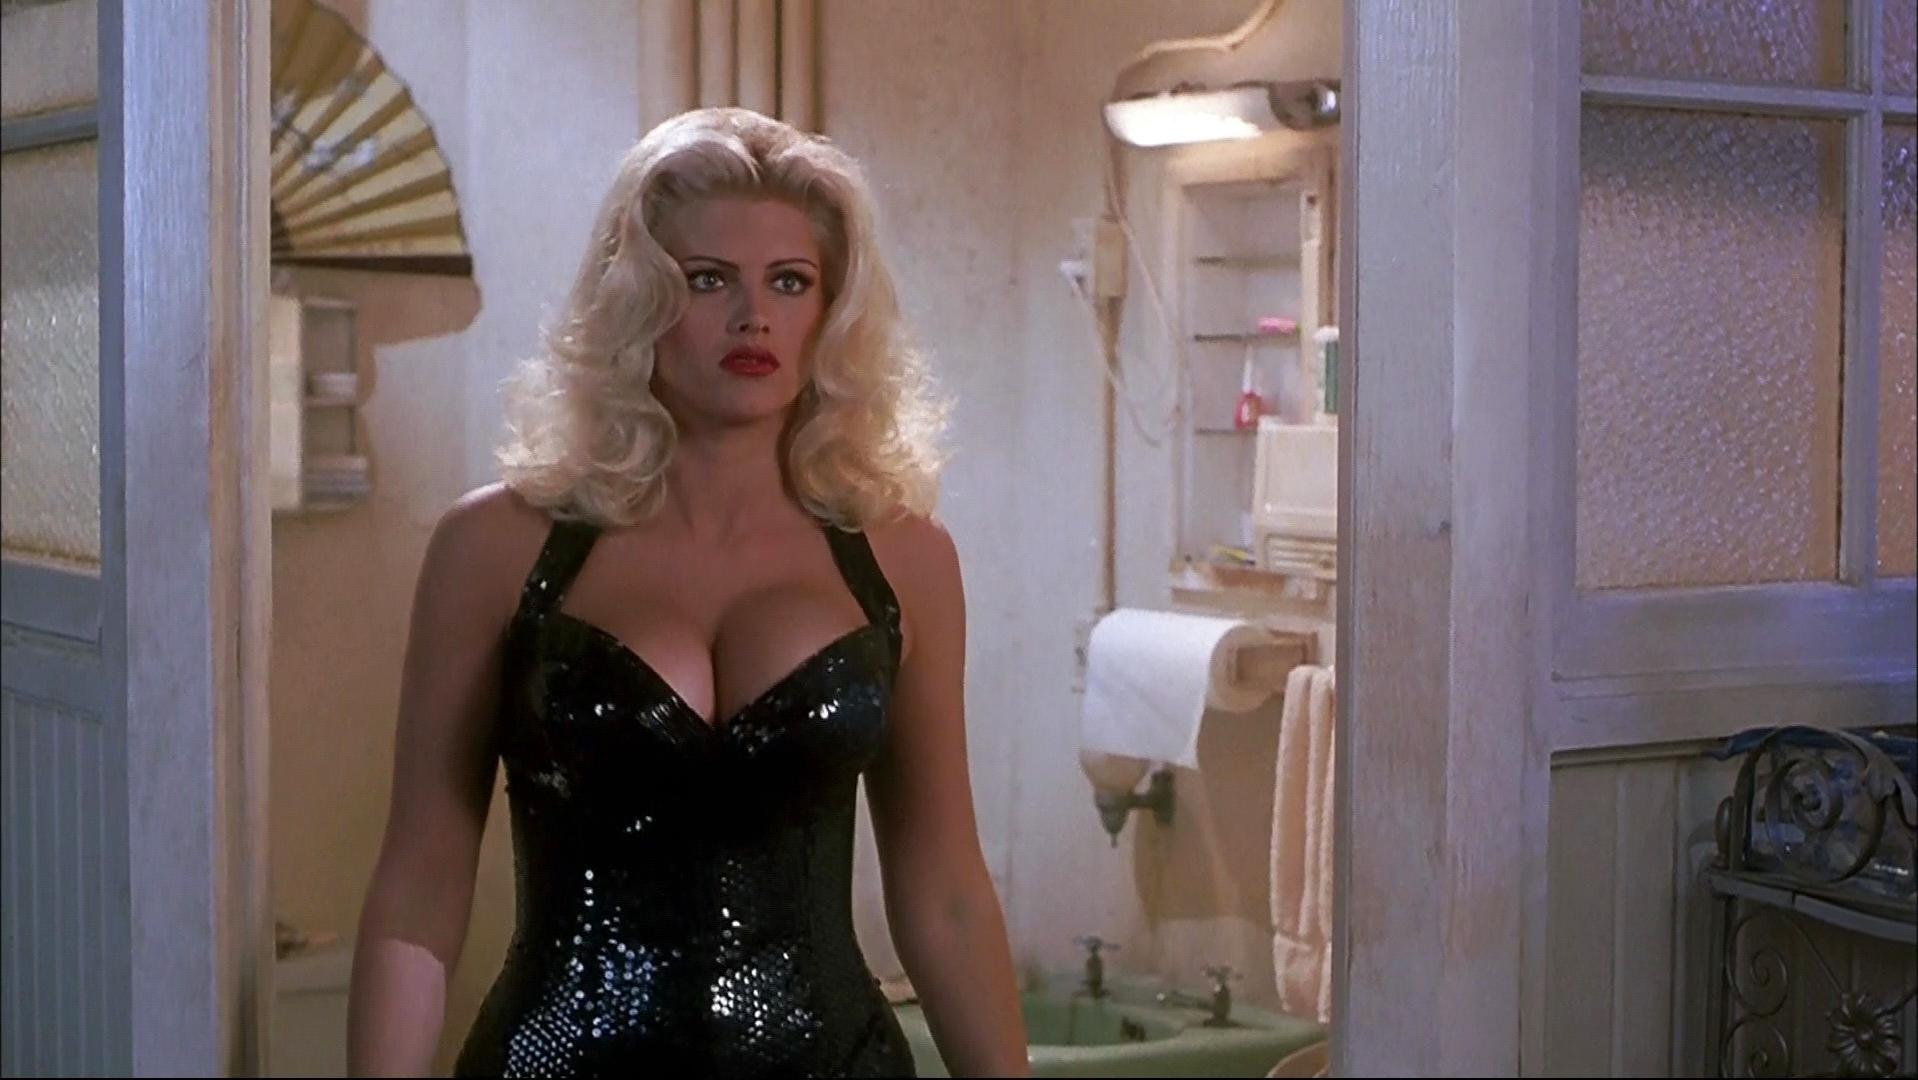 anna nicole smith naked with another woman